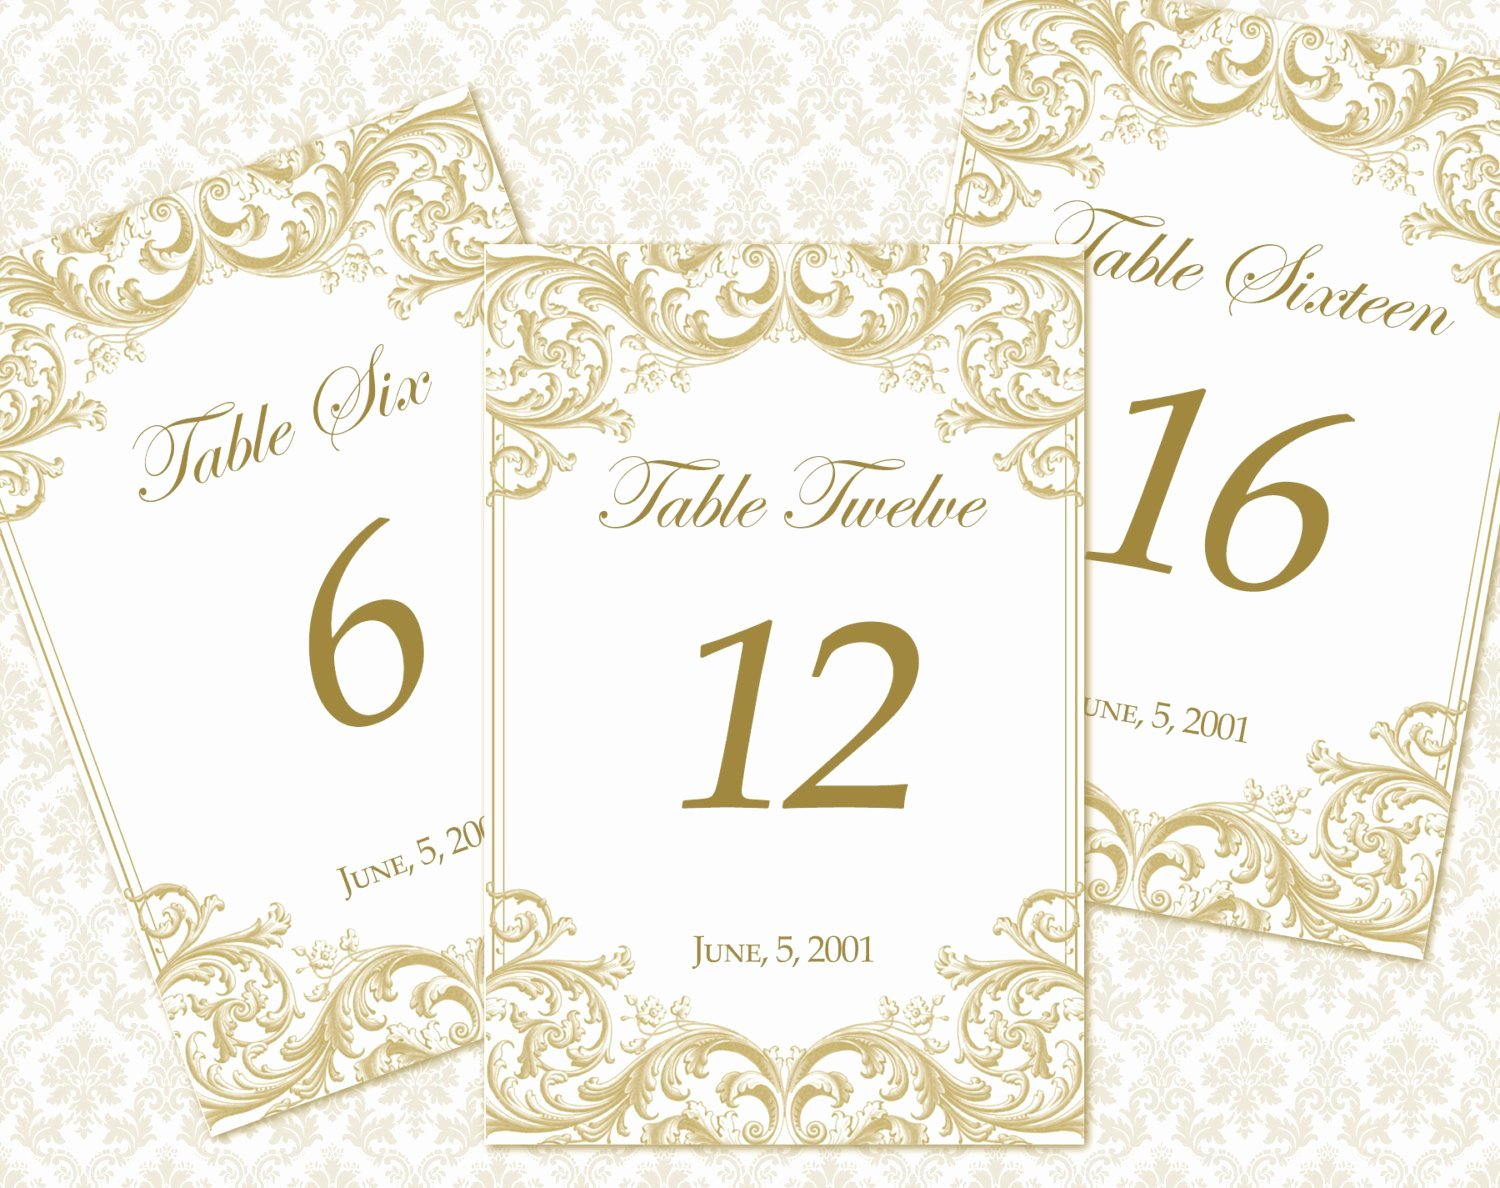 Wedding Table Numbers Template New Diy Printable Wedding Table Number Template by